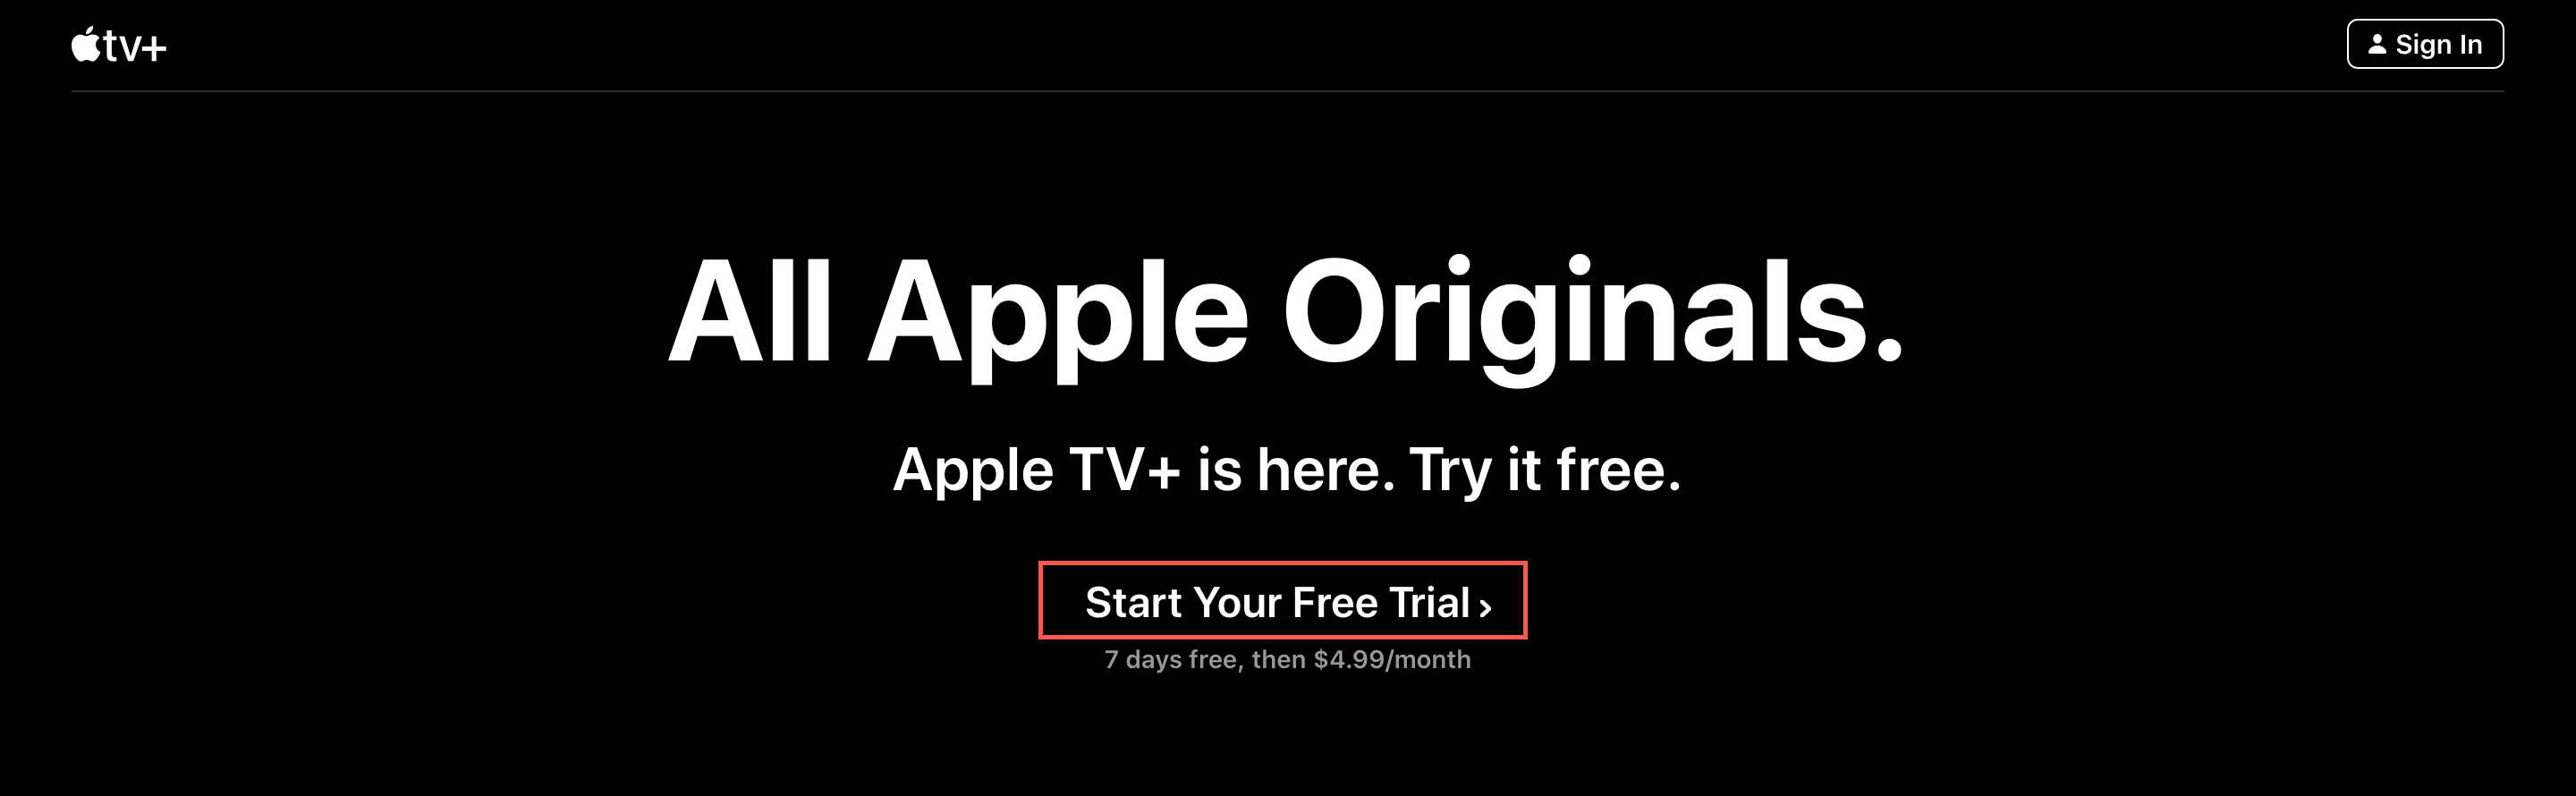 Start free trial Apple TV+ web